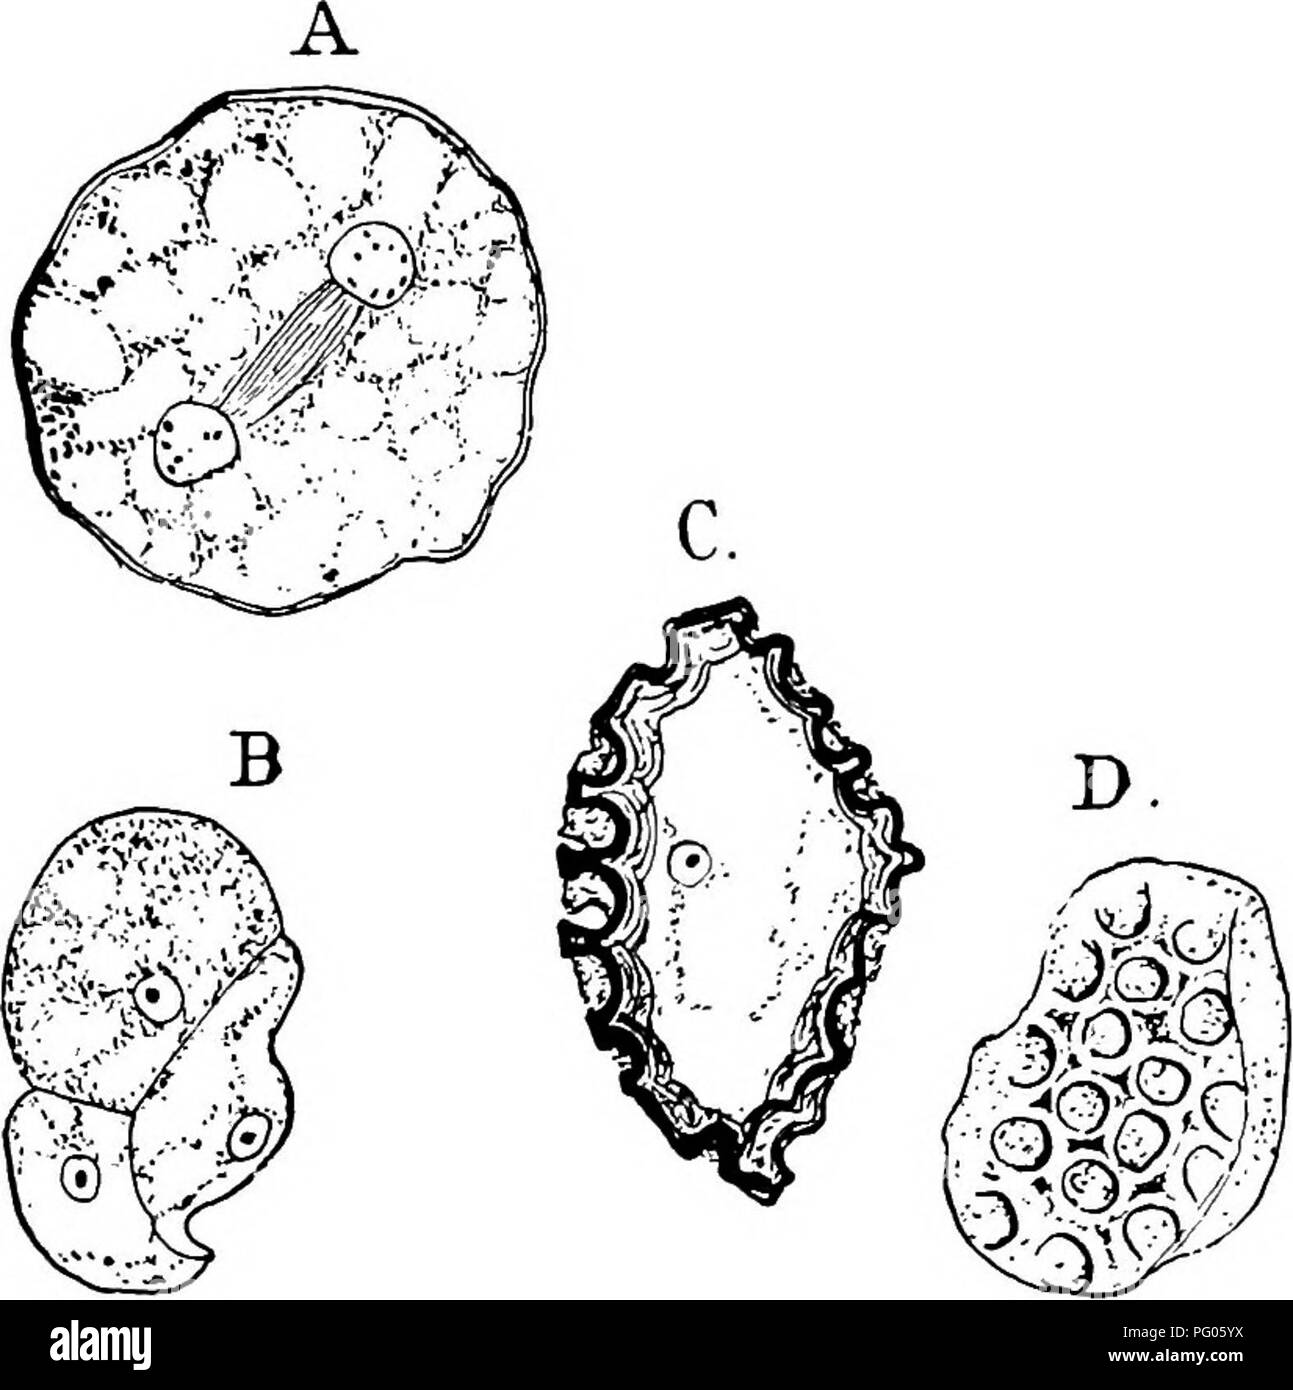 hight resolution of  the structure and development of mosses and ferns archegoniatae plant morphology mosses ferns muscinem hepatic marchantiales 35 fig